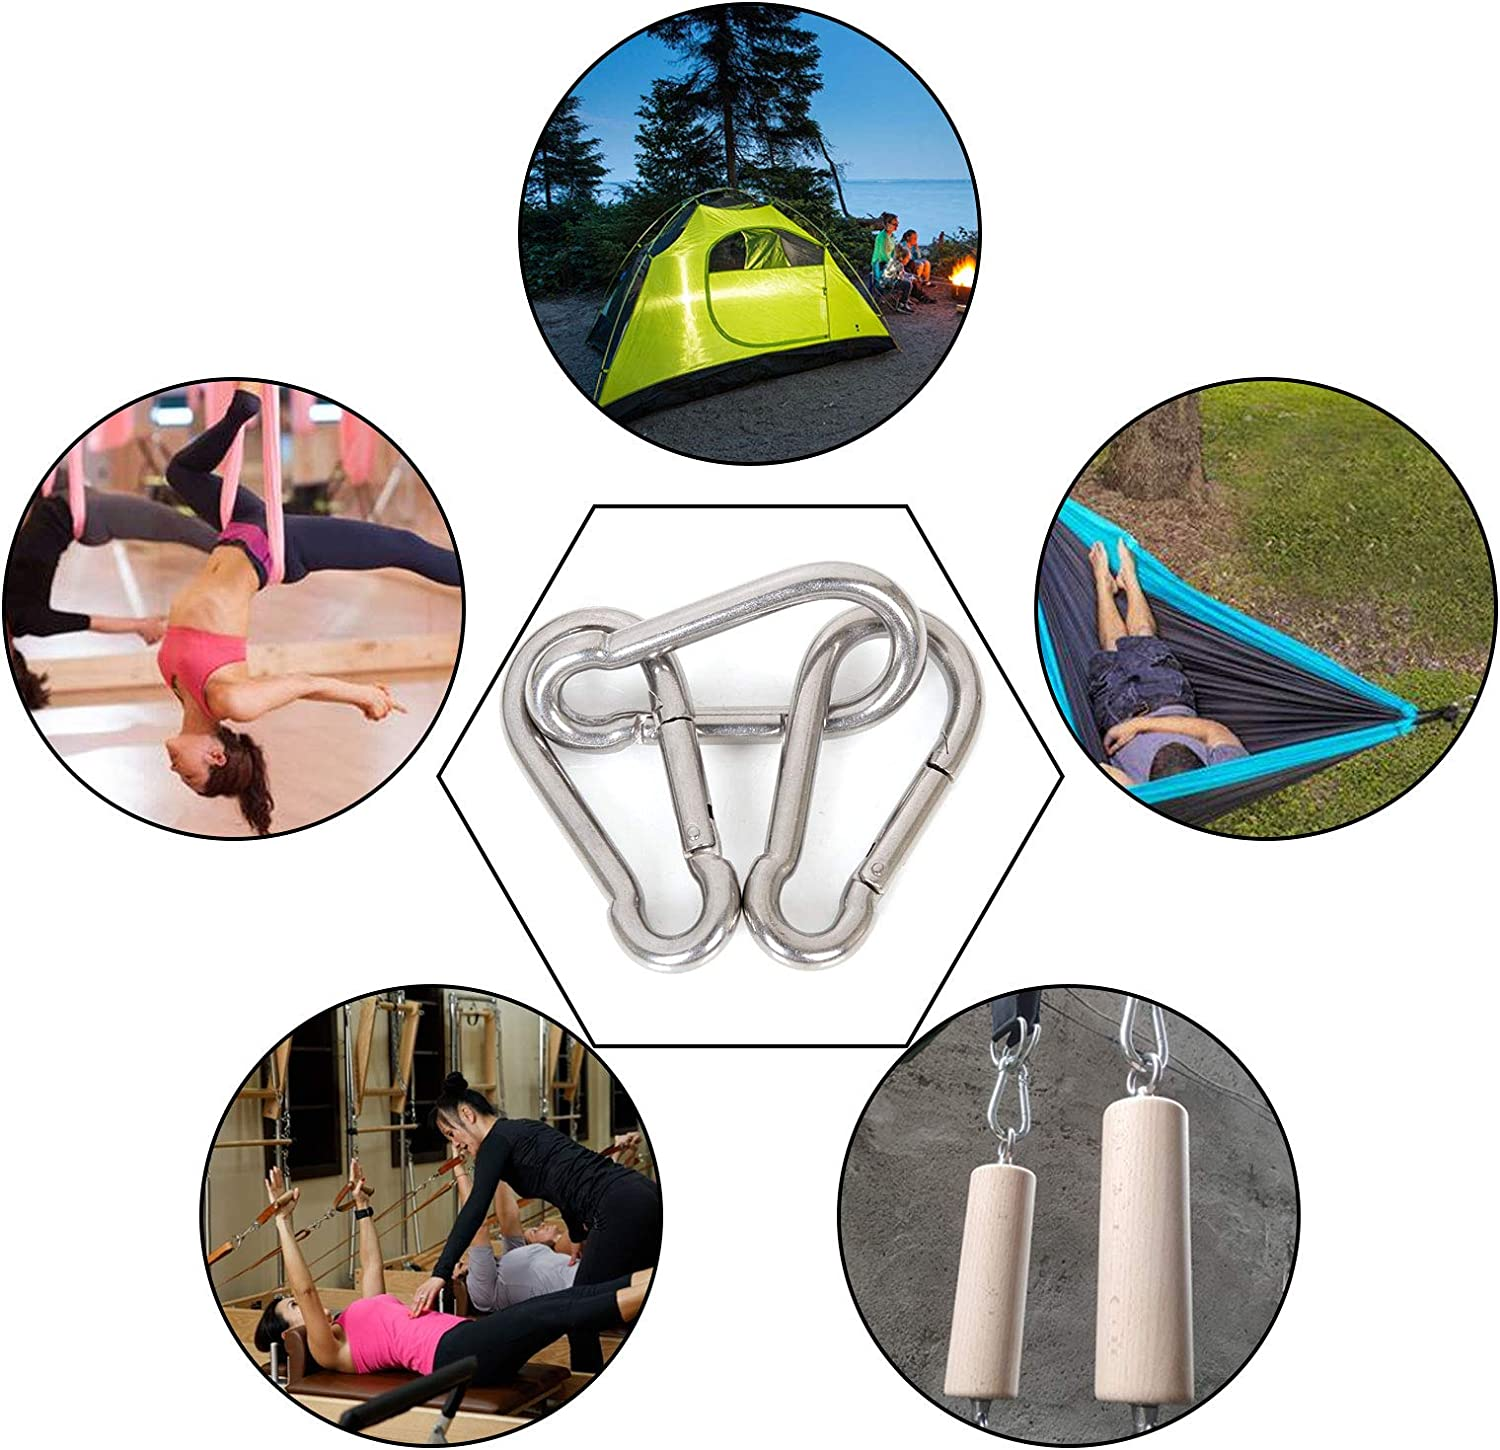 """Hammock Sun Shade Gym 3//8/"""" Diameter Heavy Duty Carabiner Clip Large Stainless Steel Spring Clips 10PCS 4/"""" Spring Snap Hooks 770 Holding Capacity M10 Carabiner Big Spring Buckles for Swing"""